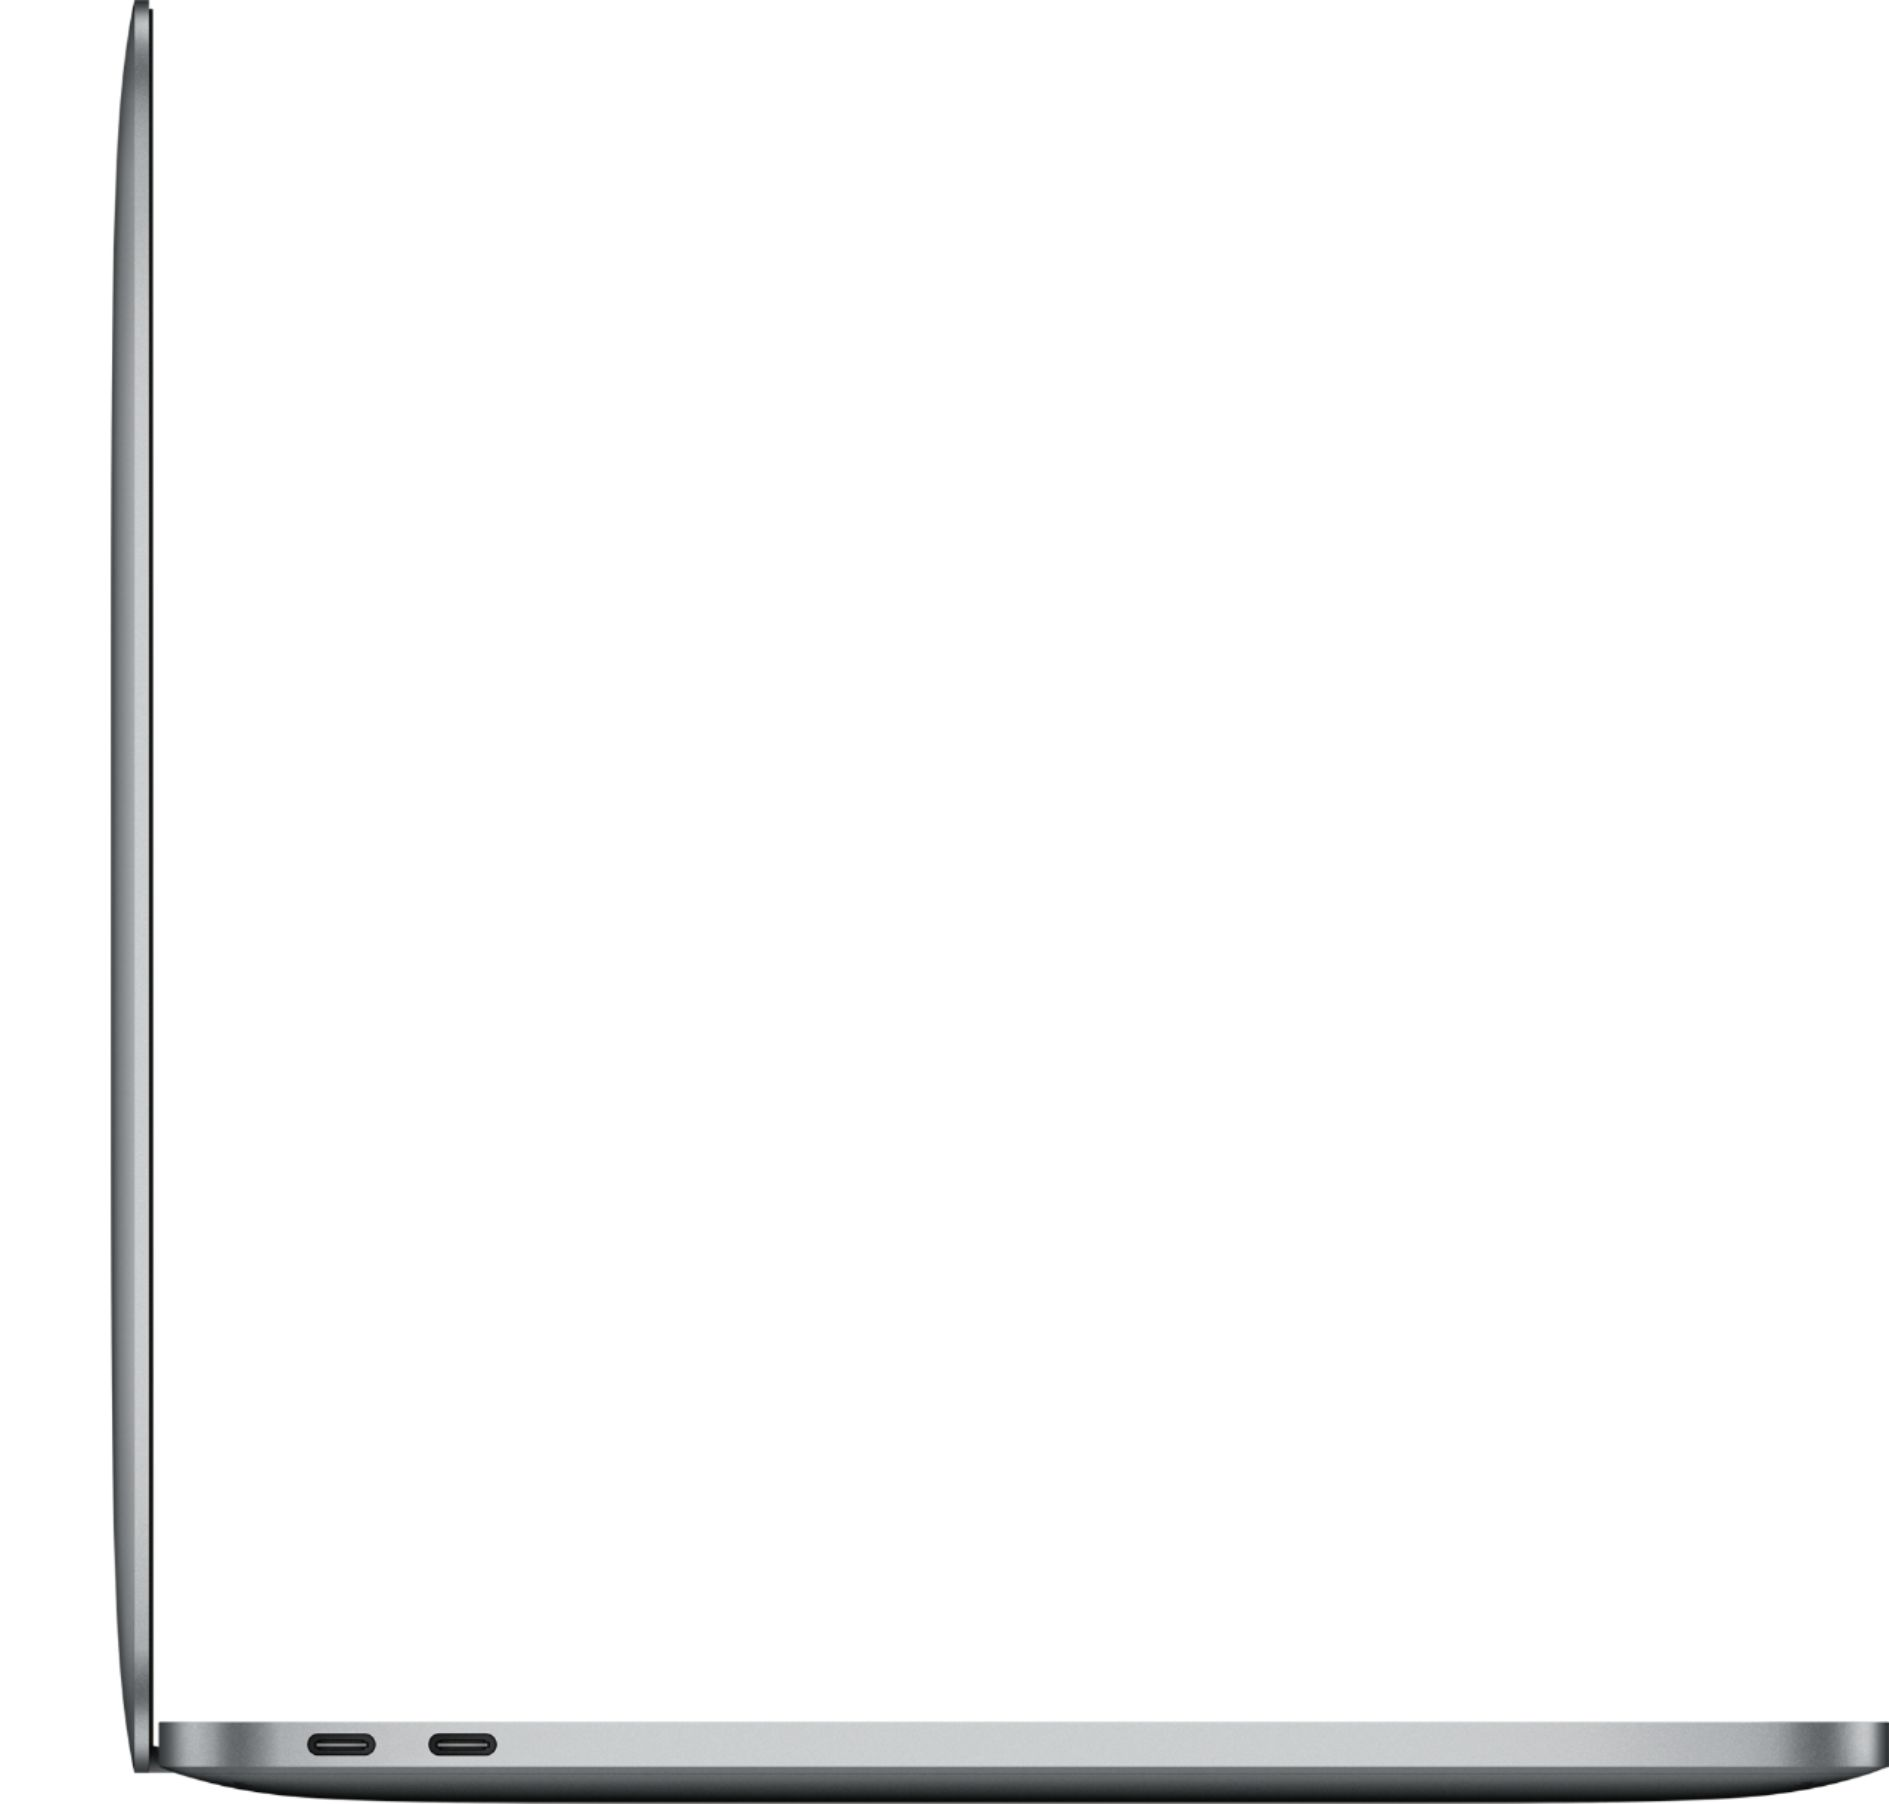 """Alt View Zoom 10. Apple - MacBook Pro 15.4"""" Laptop - Intel Core i9 - 32GB Memory - 1TB Solid State Drive - Space Gray."""